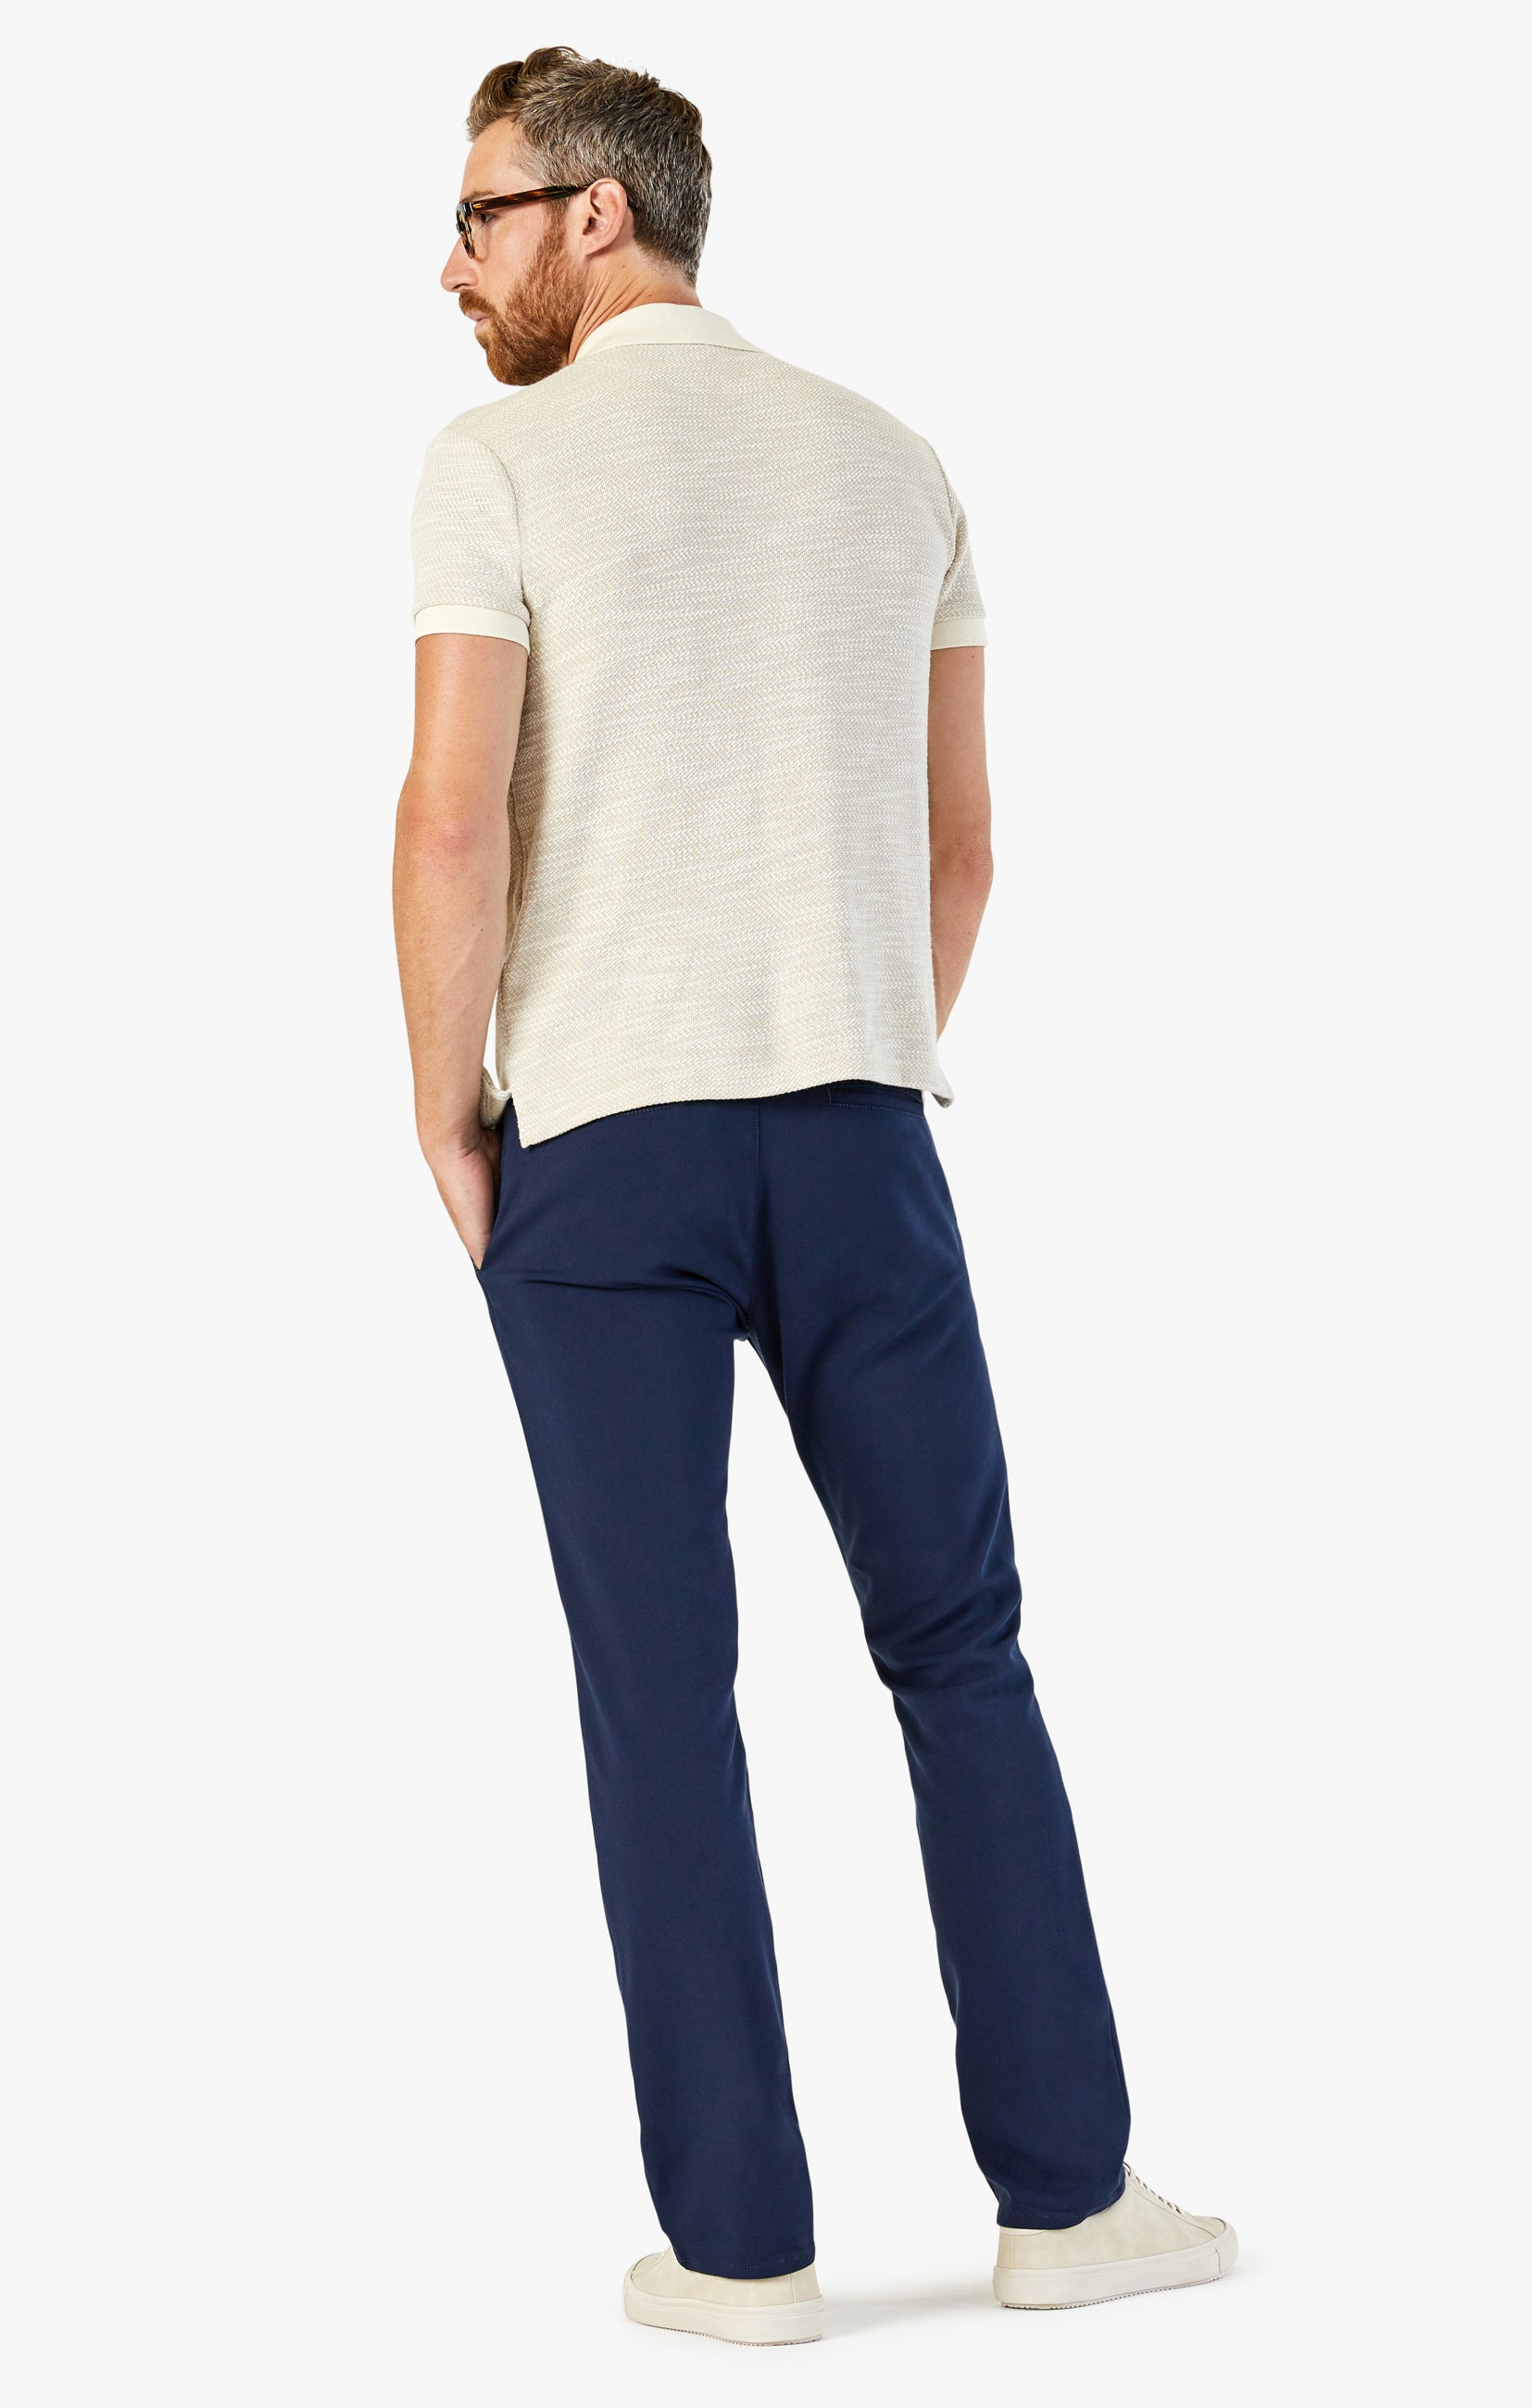 Verona Chino Pants in Navy High Flyer Image 3